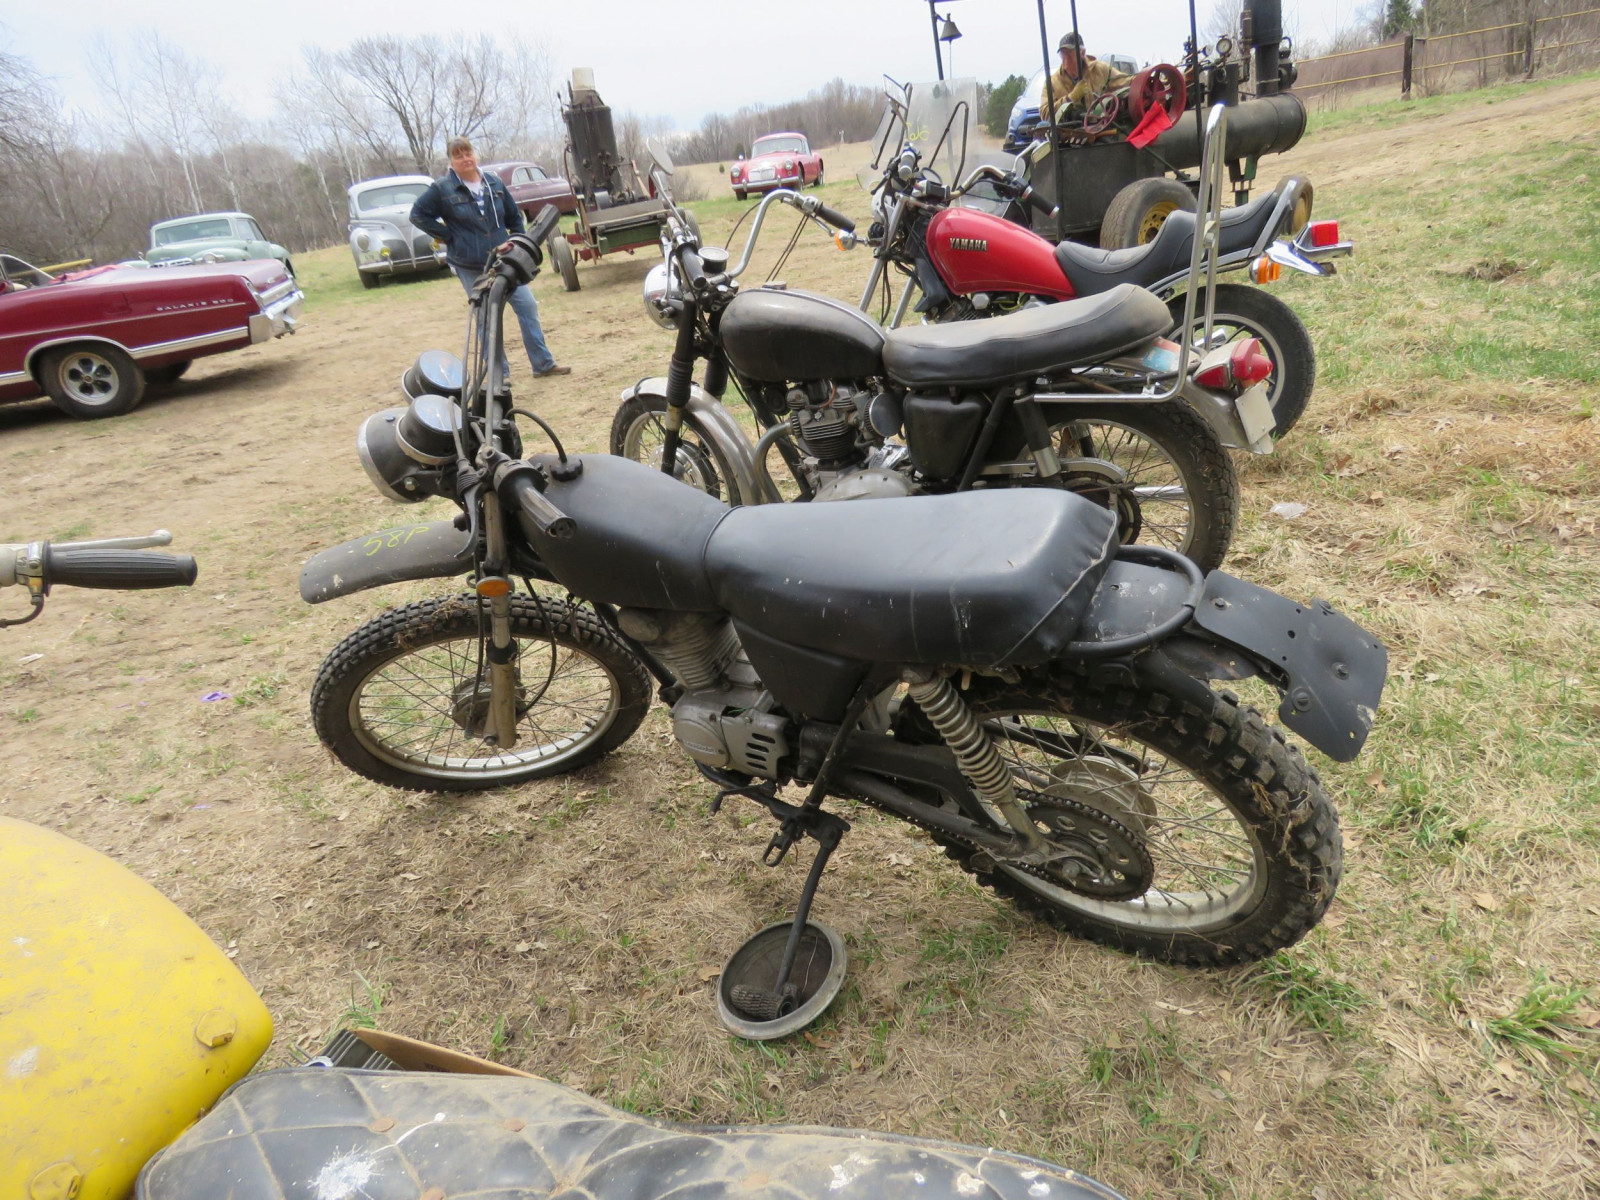 Honda 125XL Motorcycle for Project or parts - Image 4